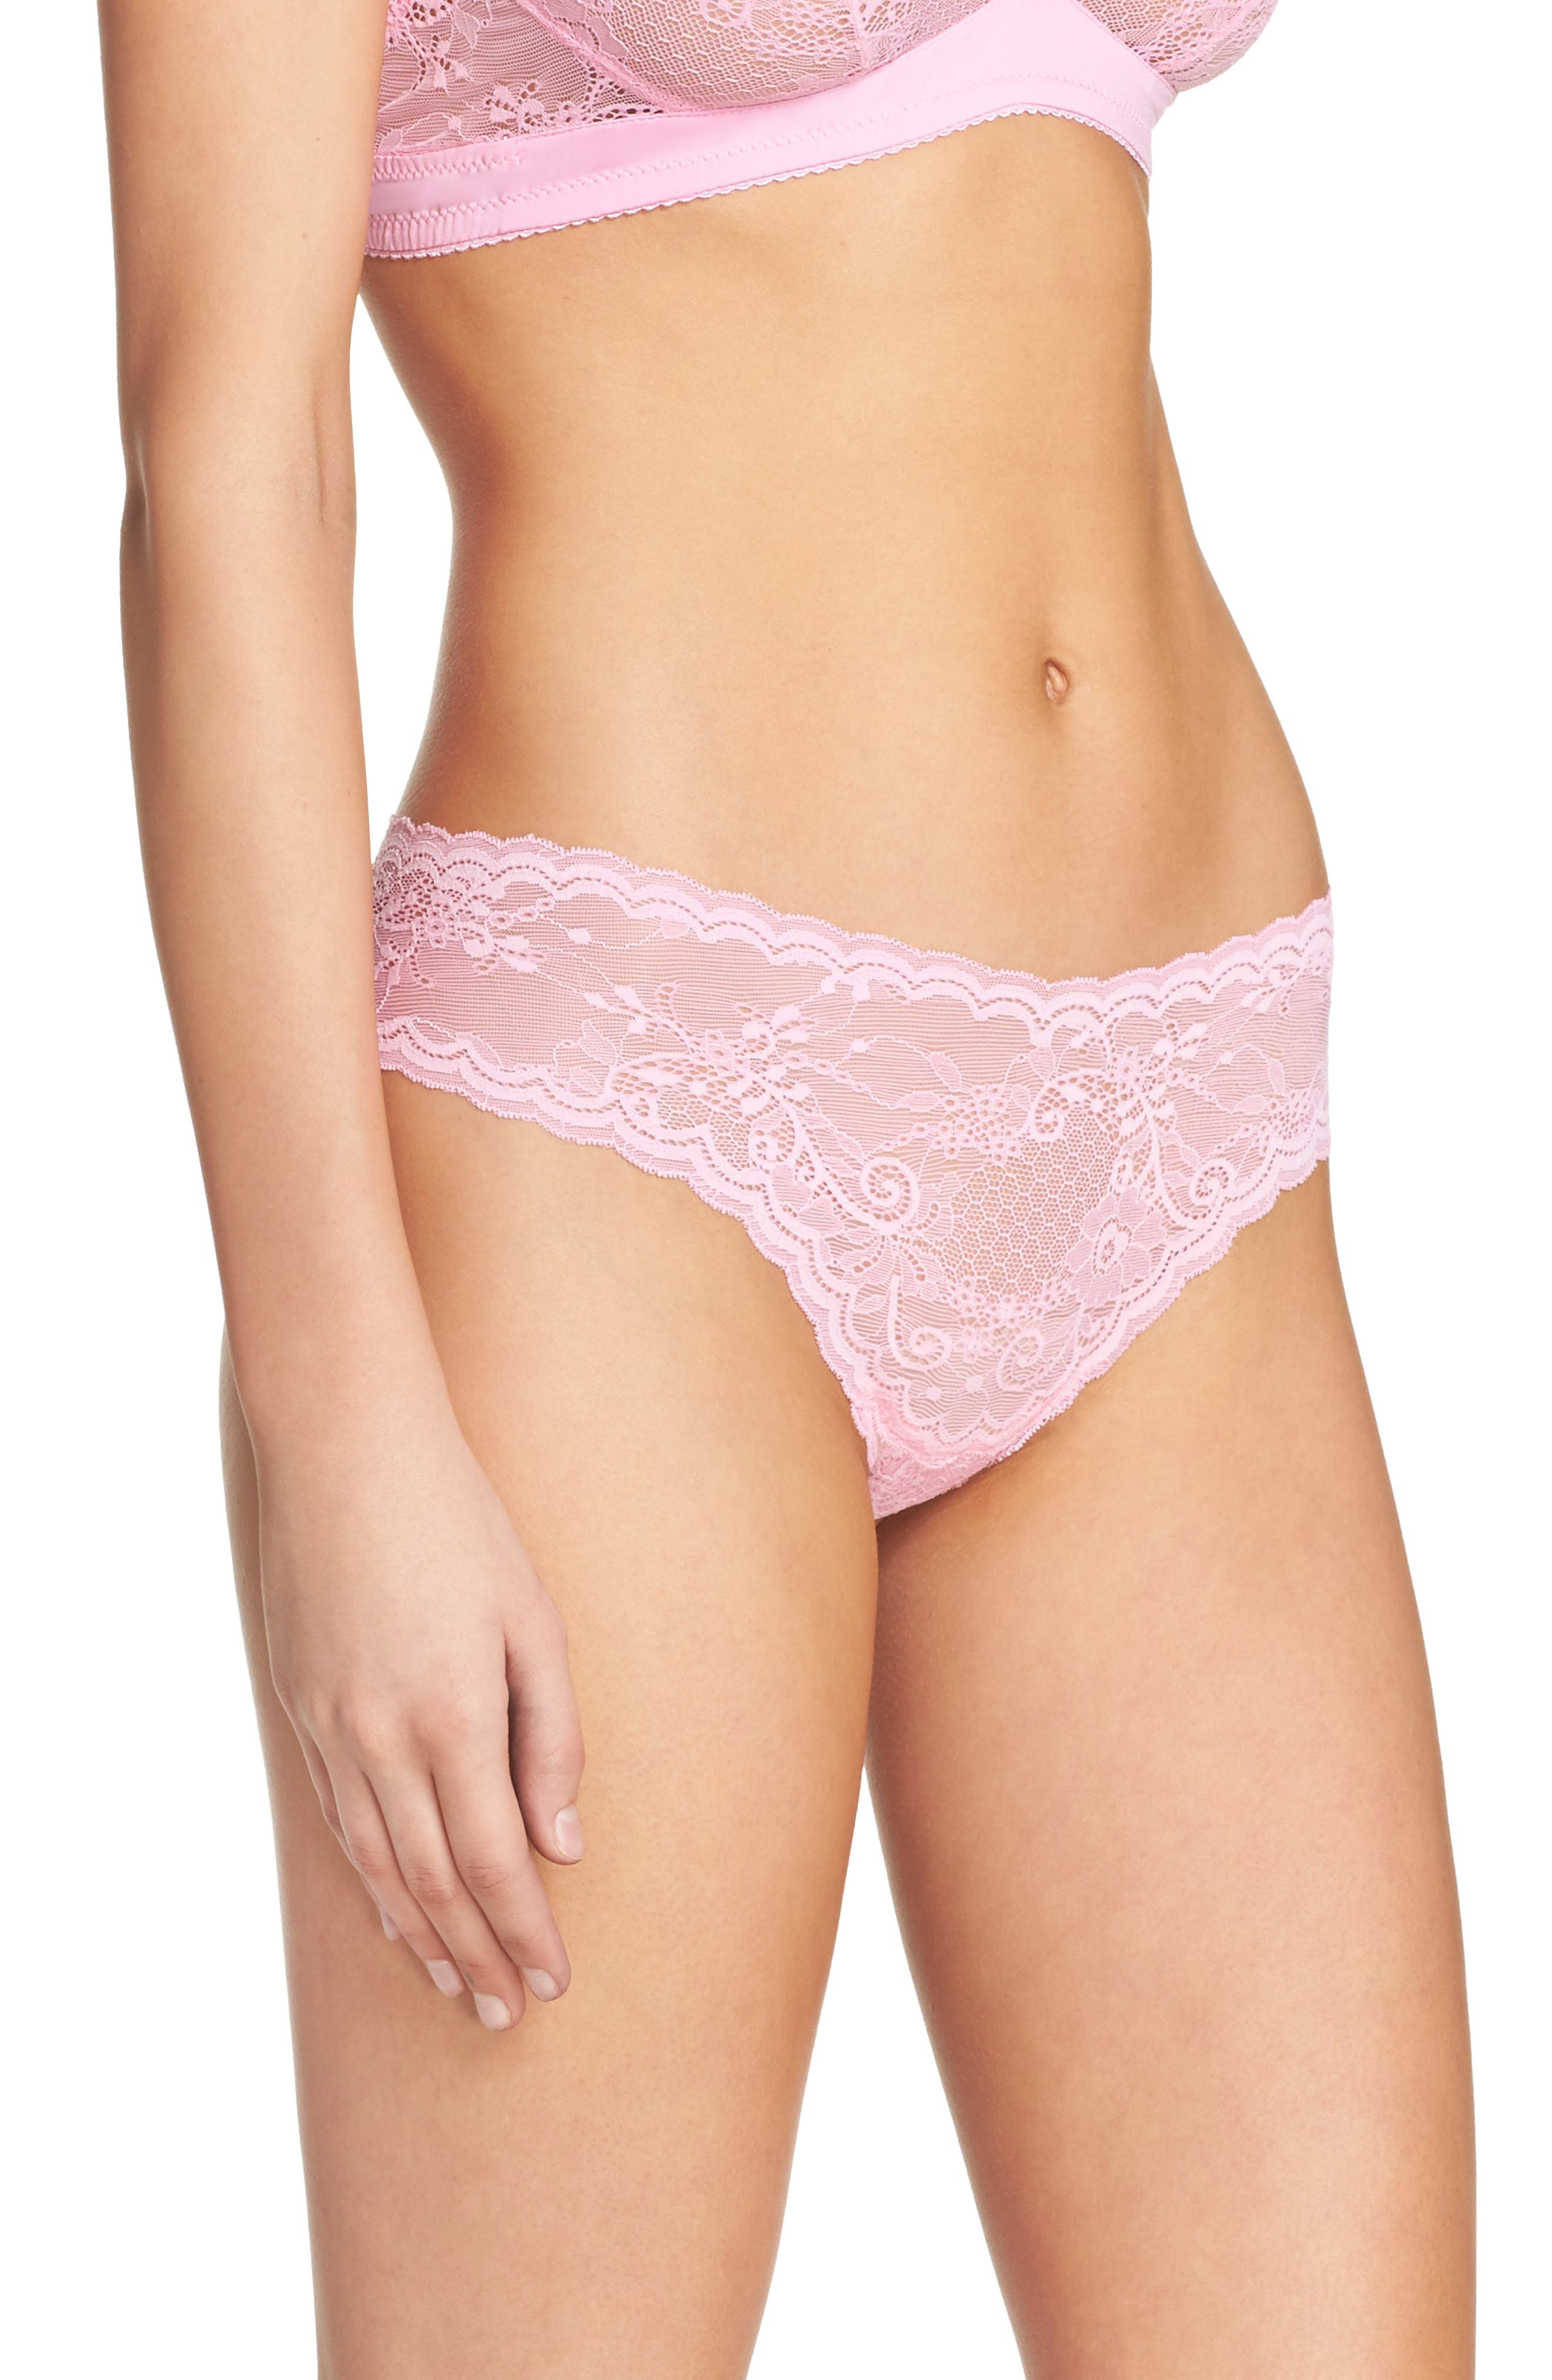 'Trenta' Low Rise Lace Thong,                             Alternate thumbnail 136, color,